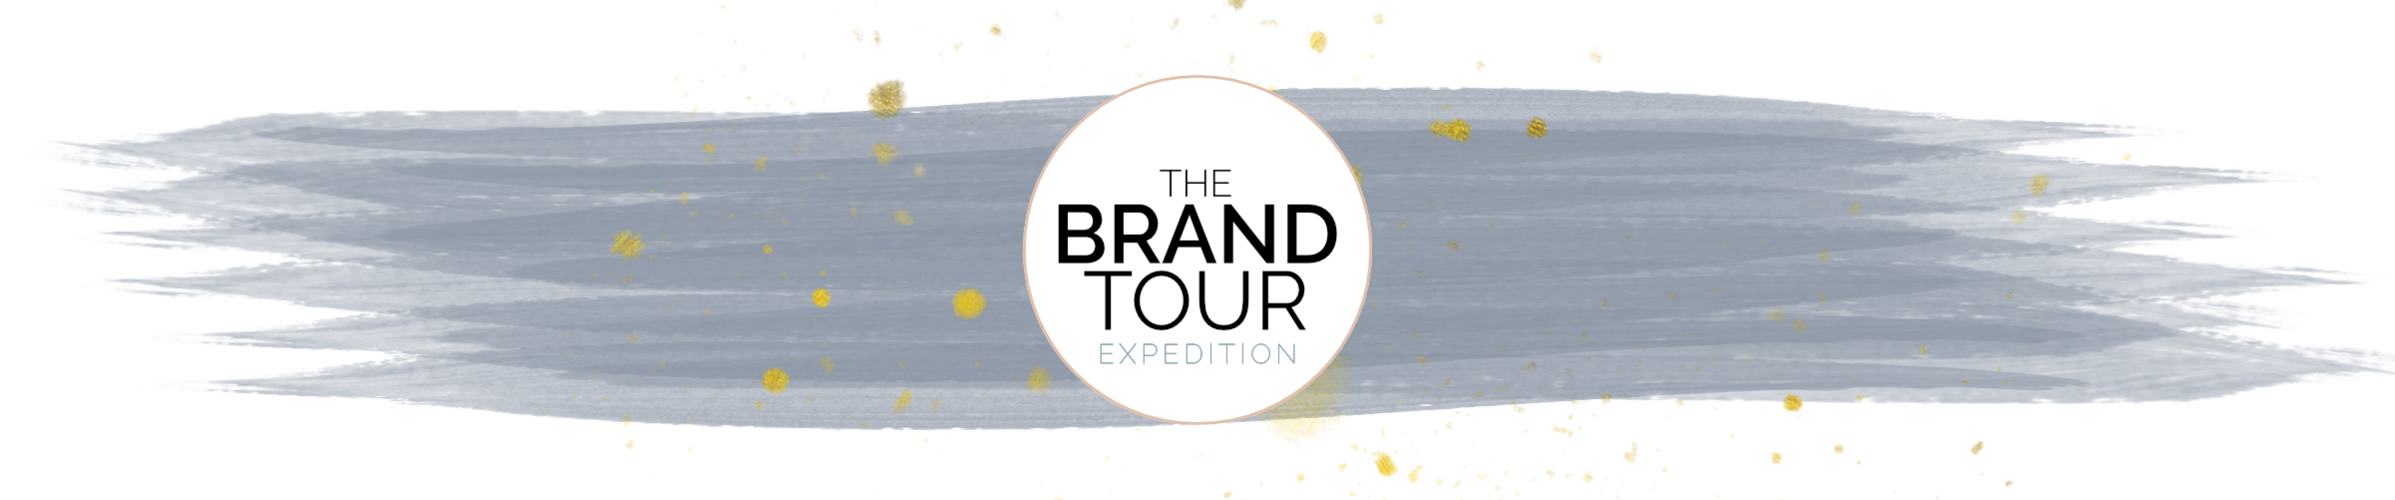 Cover the brand tour expedition blue